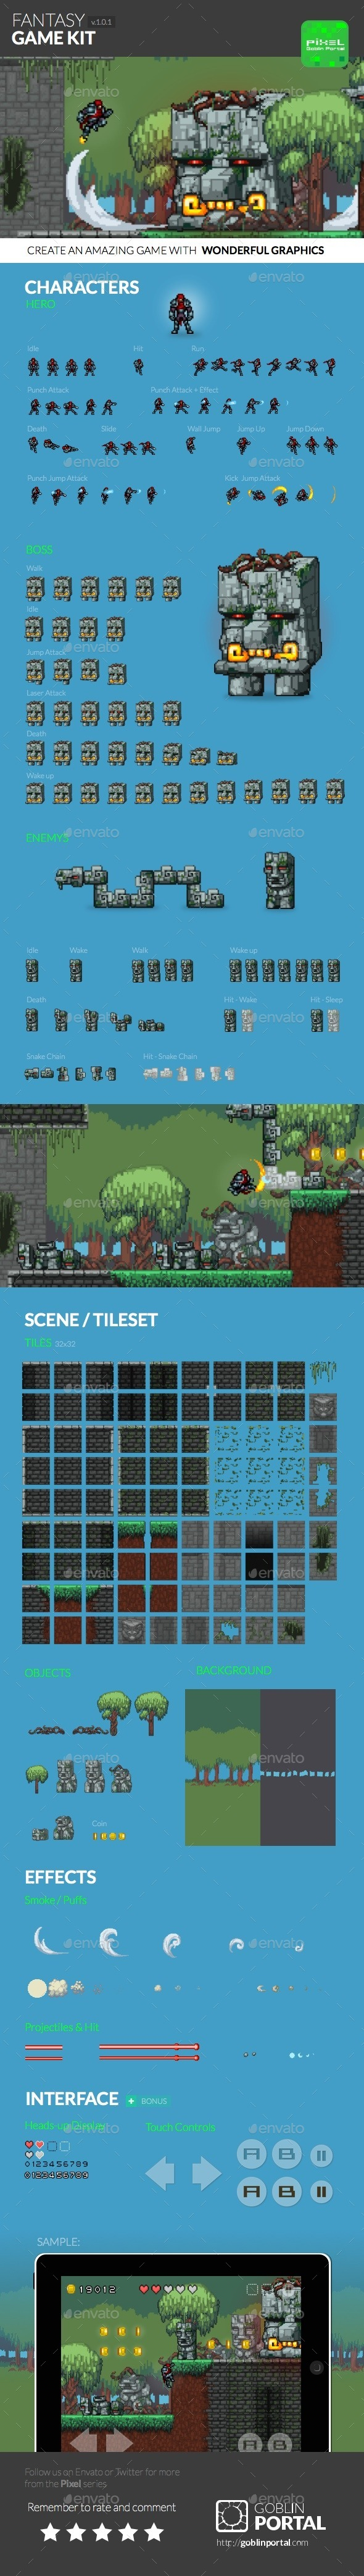 GraphicRiver Fantasy Sidescroller Game Kit 9066848